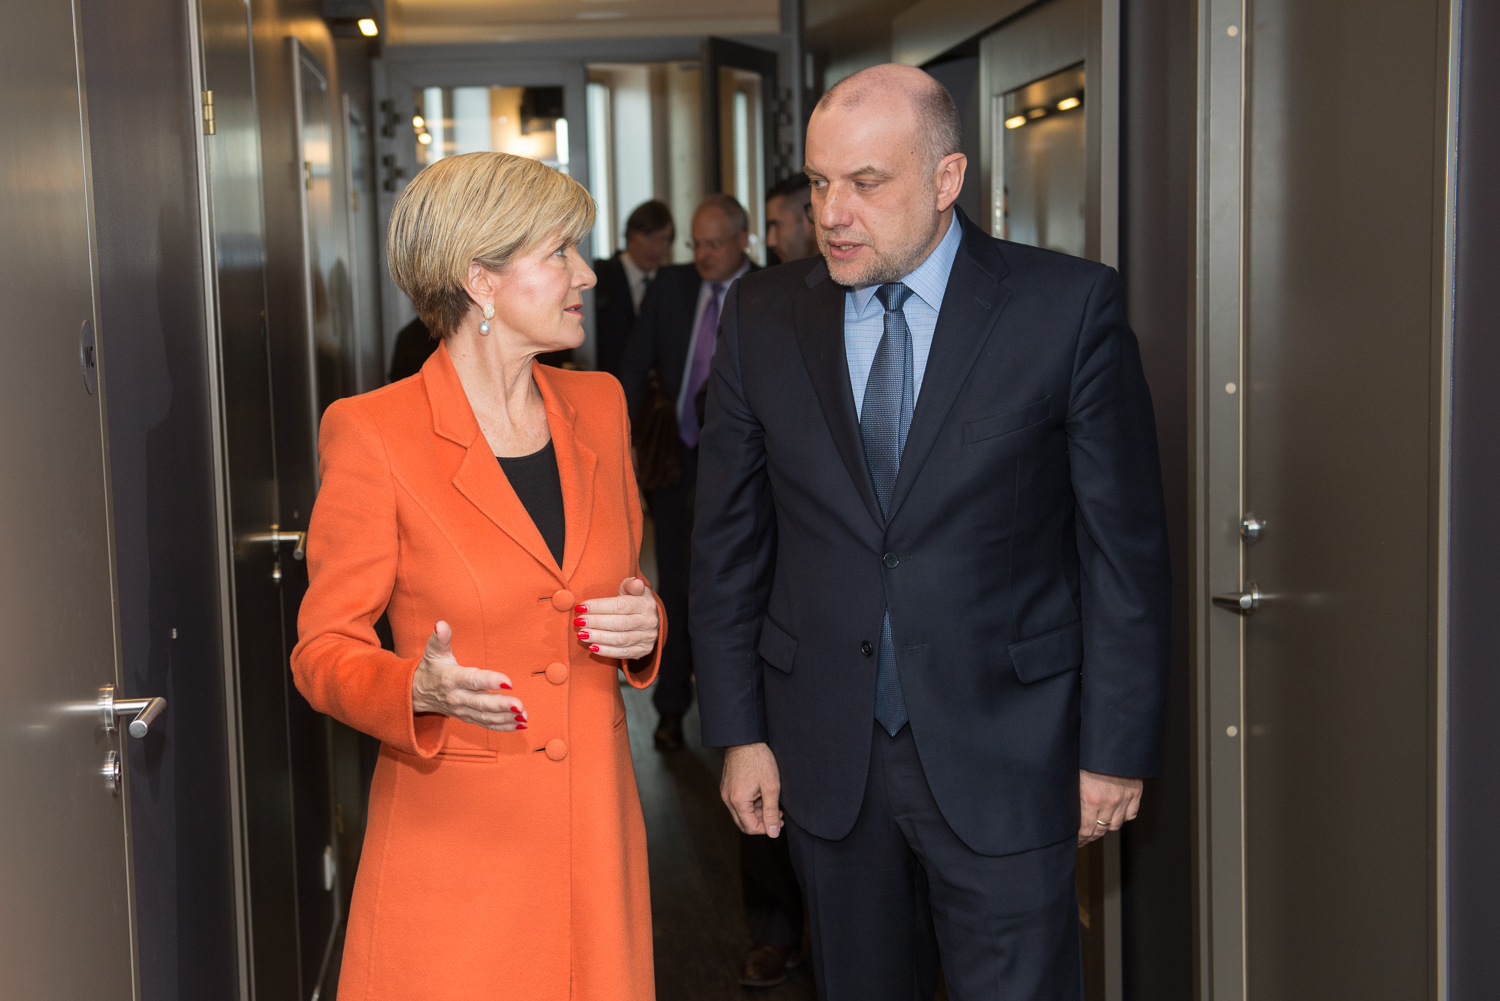 Image for A Visit by Australia's Foreign Minister, the Hon. Julie Bishop MP